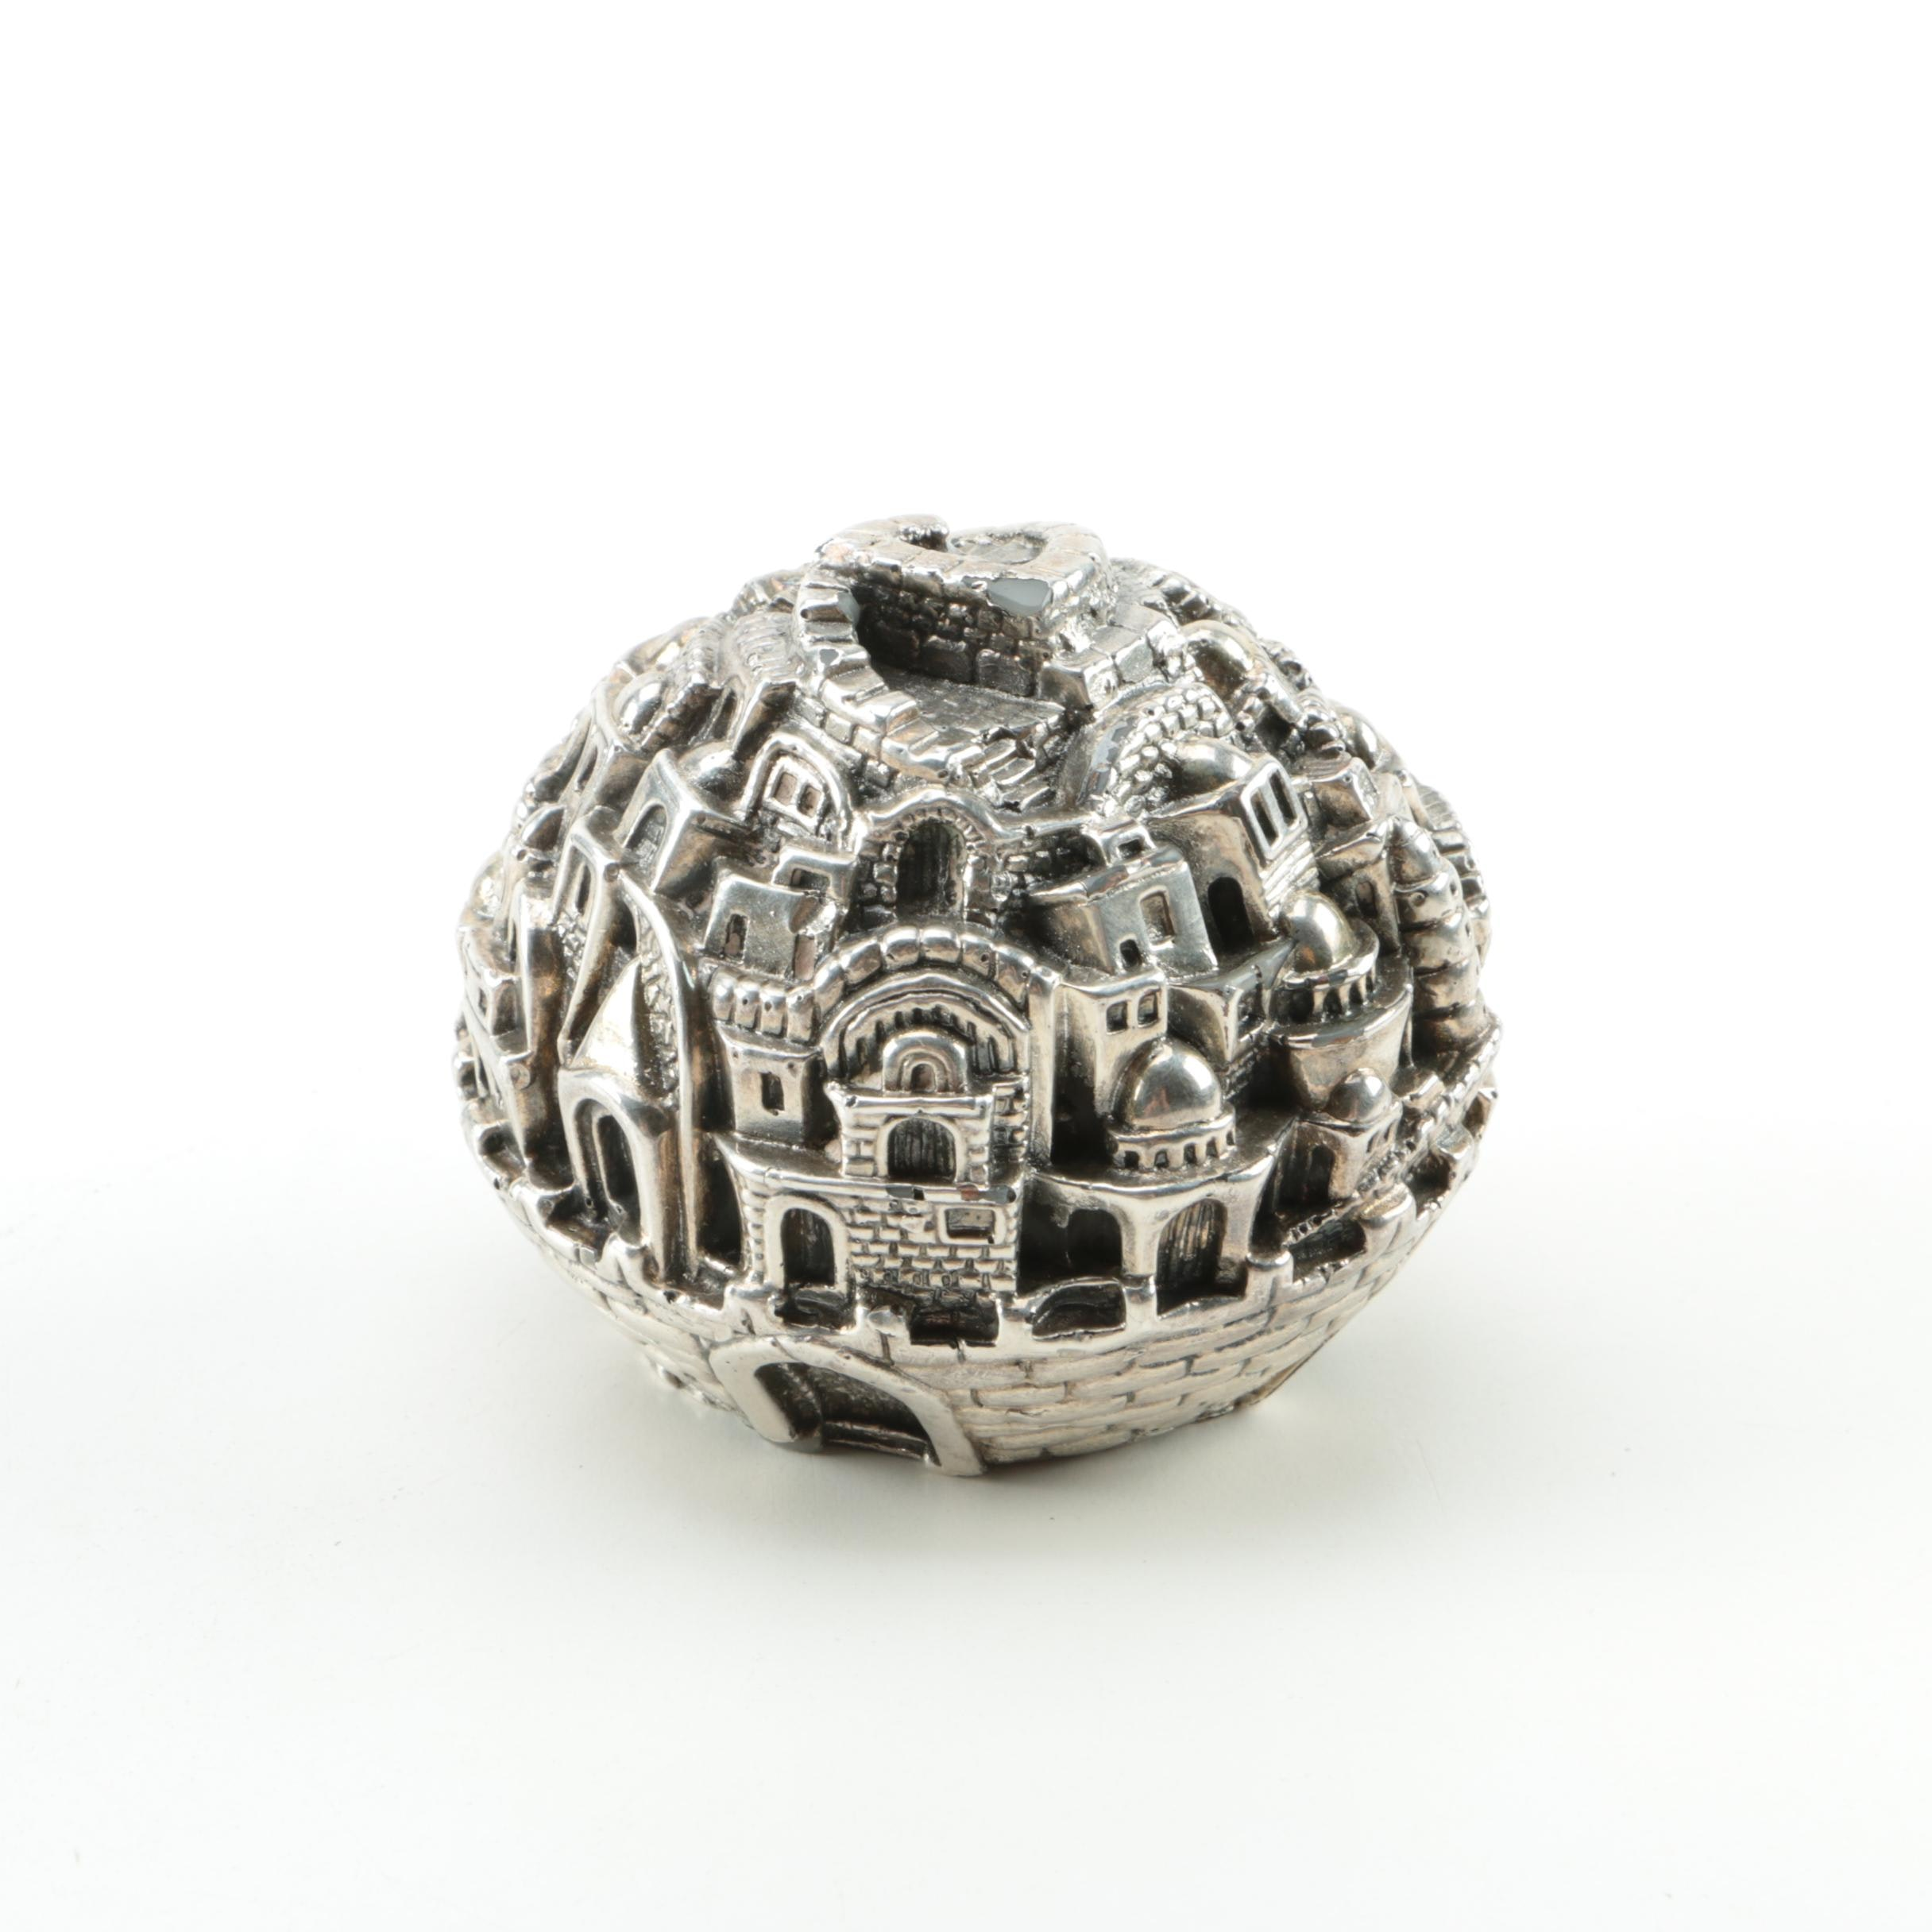 Silver Plated Paperweight